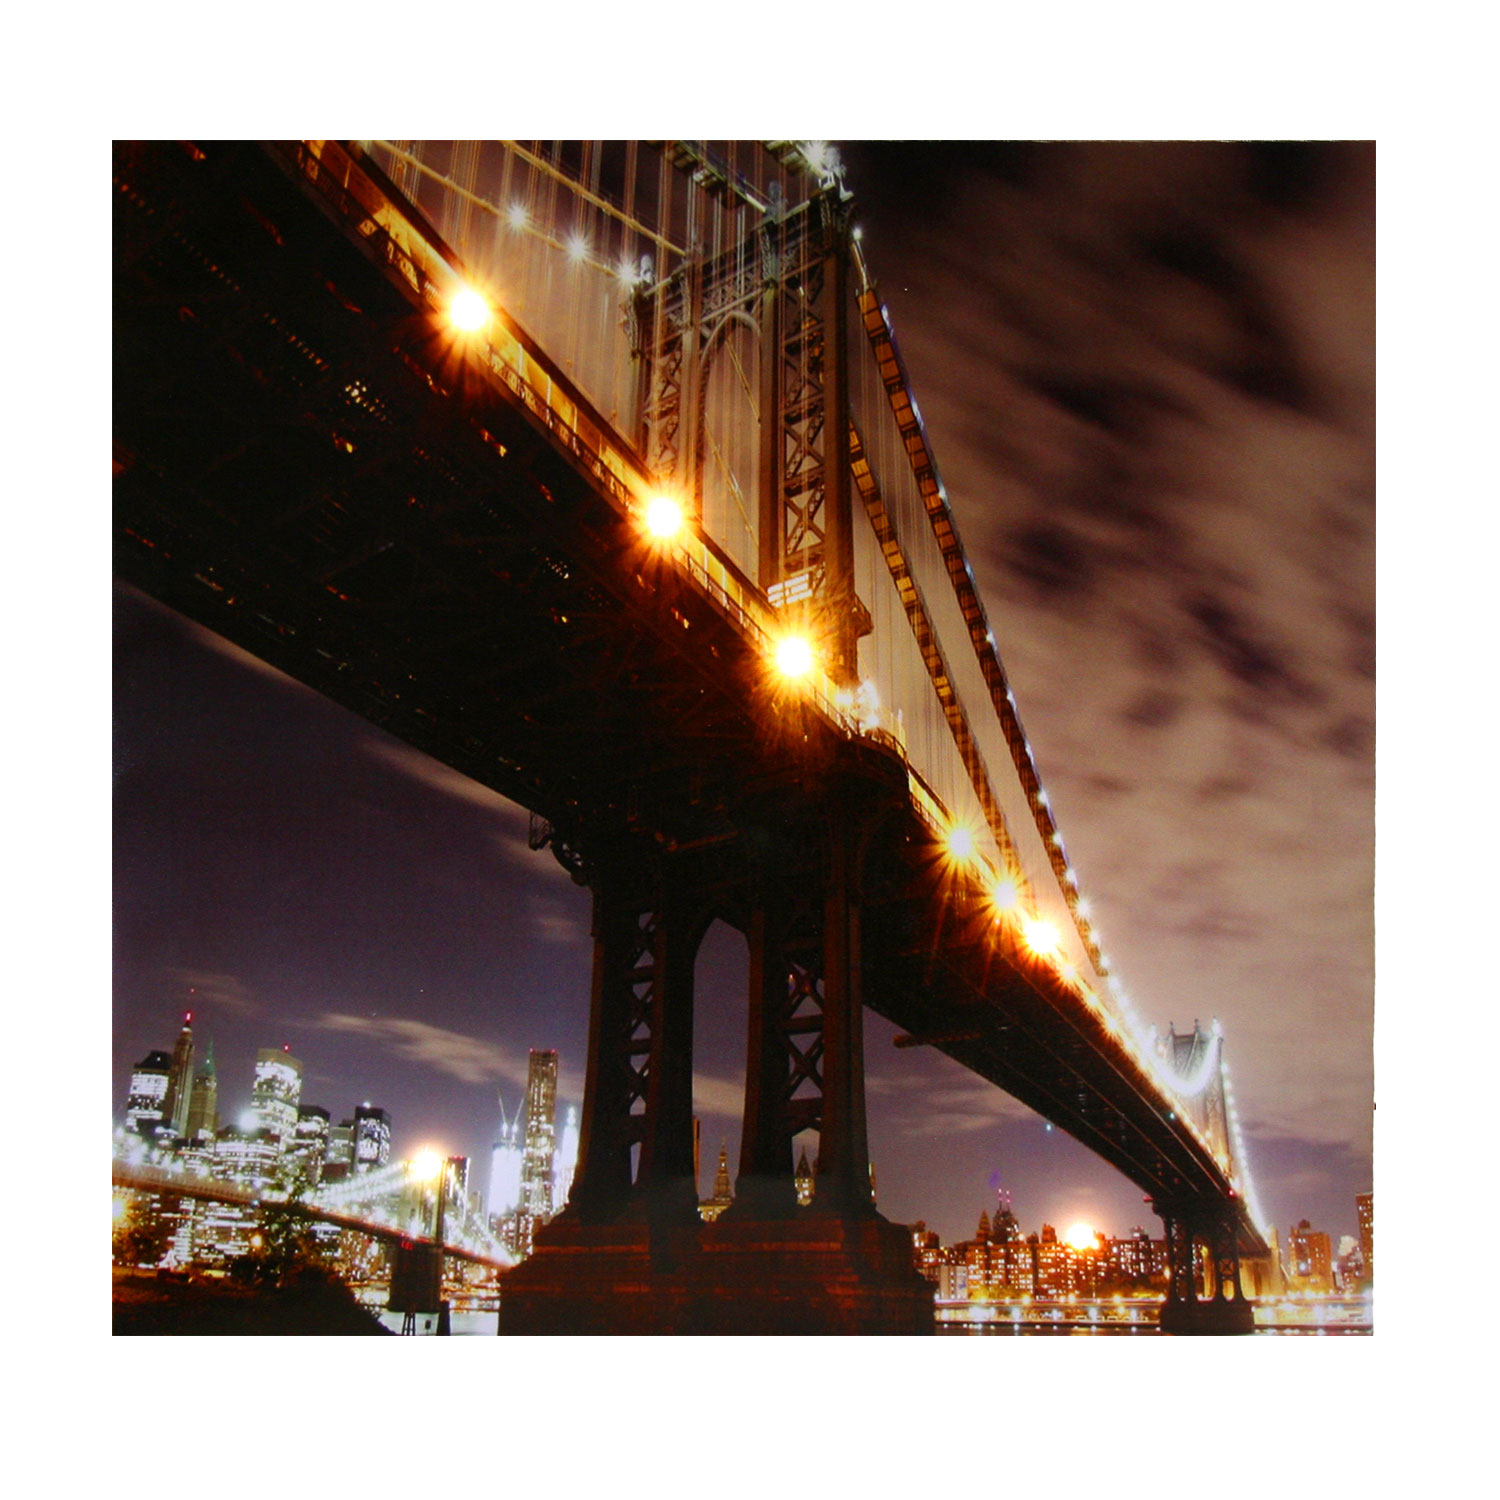 Bilder 50x50 Kunstdruck Led Bild Quotnew York Quot Mit 6 Led Wandbild 50x50 Cm